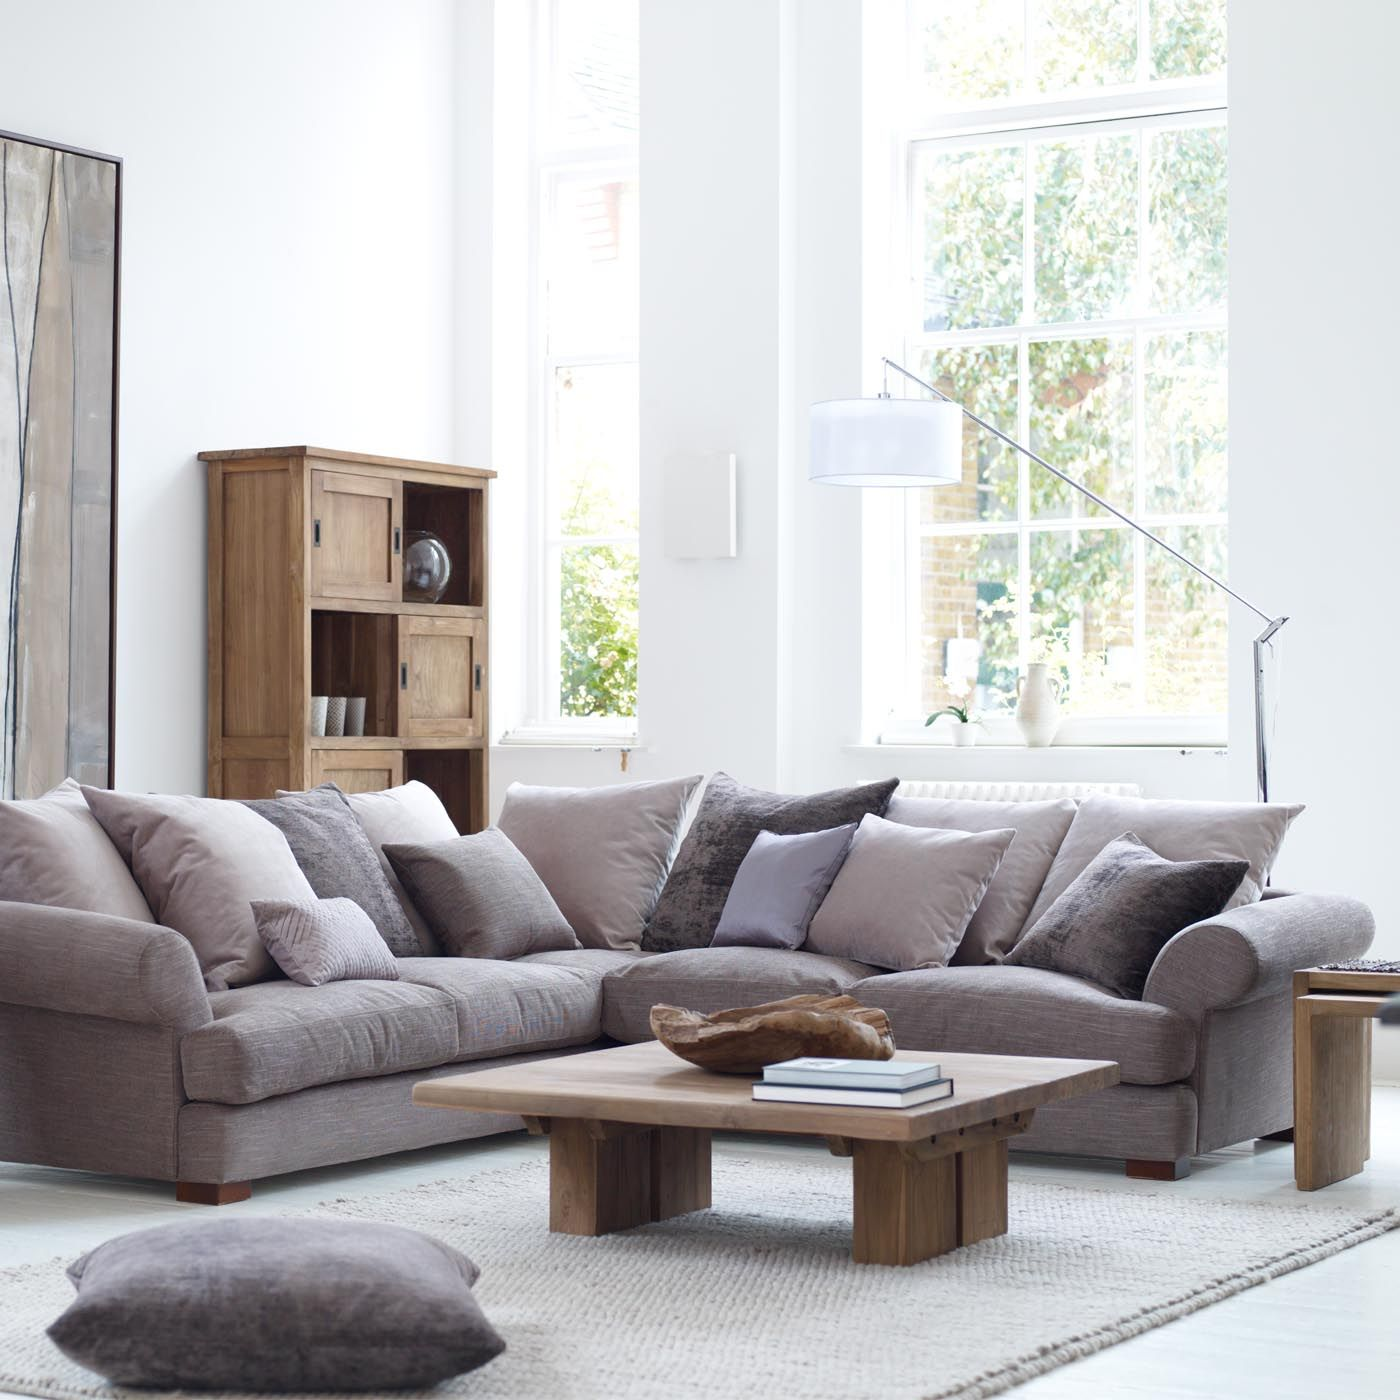 Sofas Like This But In Linwood Flint With Block Square Arms And Fewer Cushions Sofa Bed Included Living Room Sofa Living Room Living Room Inspiration